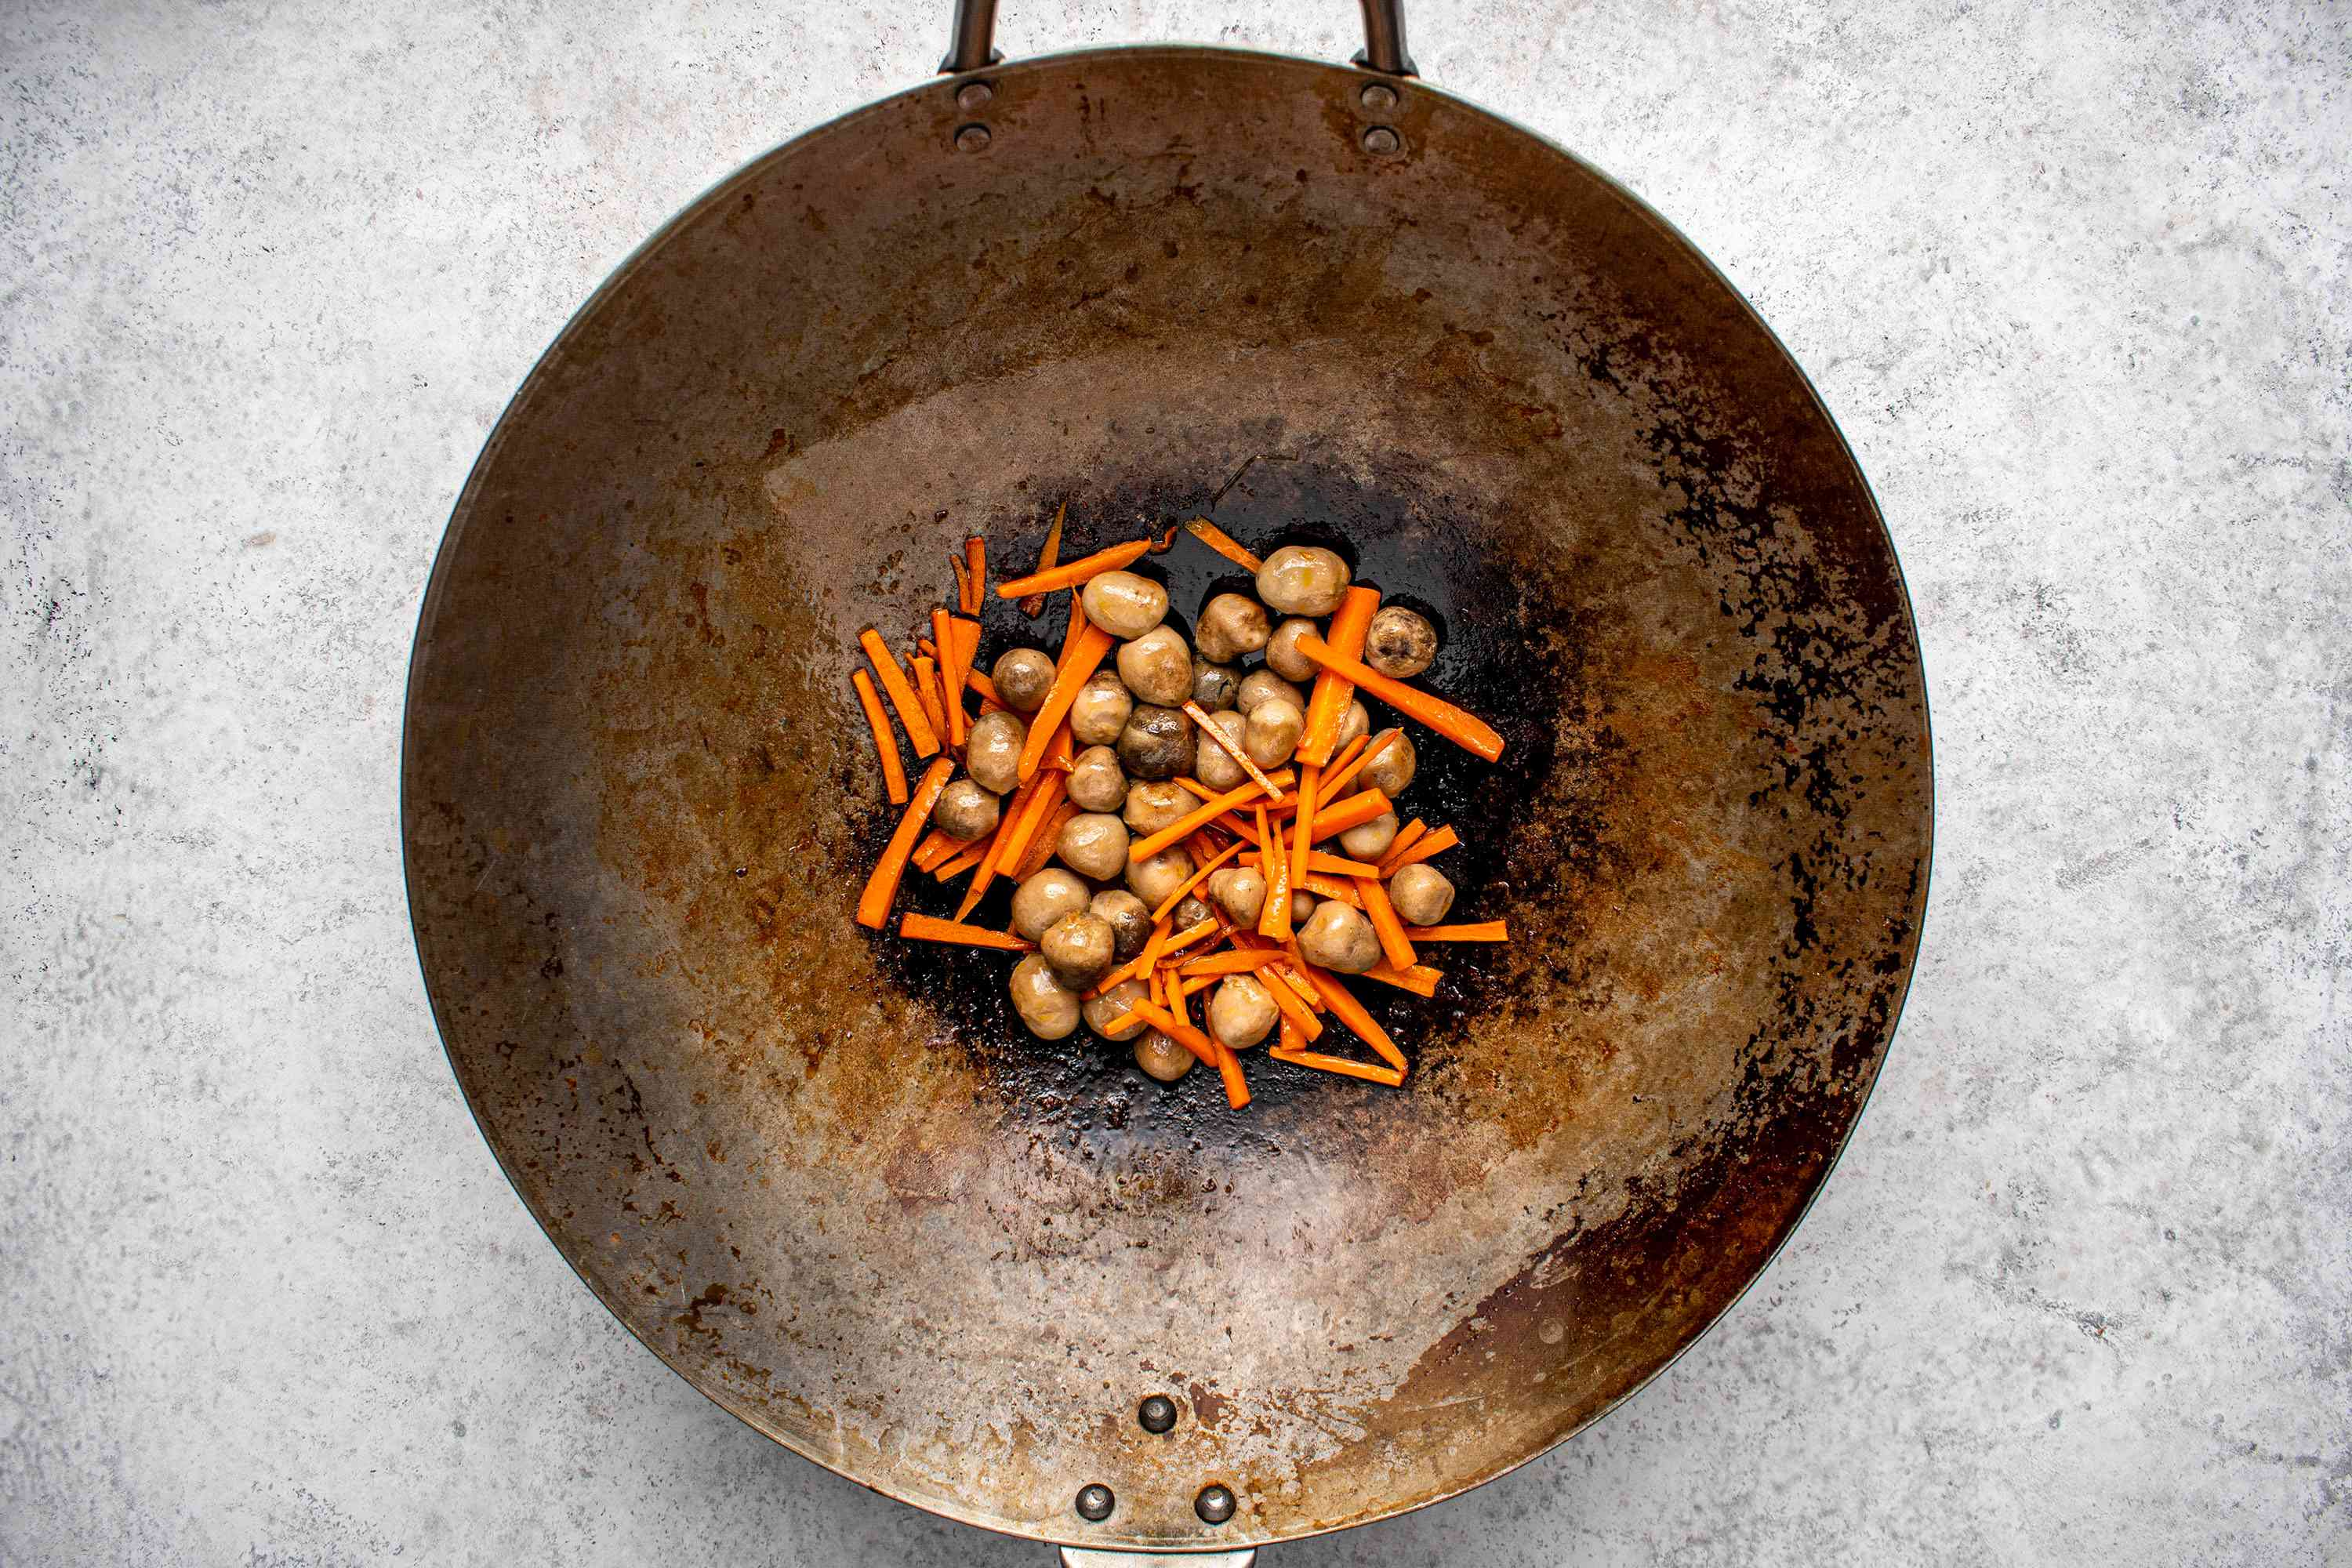 carrots and mushrooms cooking in a wok